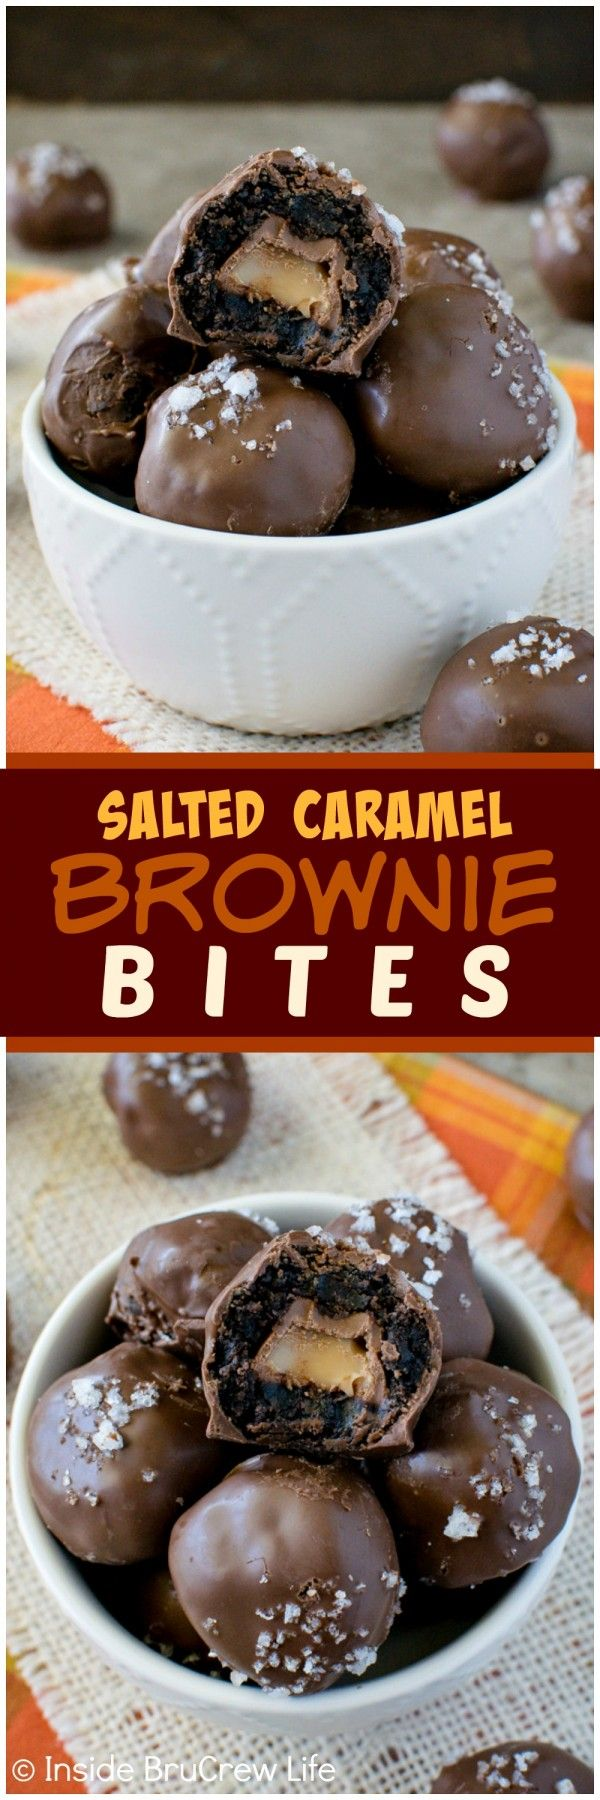 Salted Caramel Brownie Bites - hiding caramel candies inside chocolate makes these treats disappear in a hurry.  Great dessert recipe for parties!